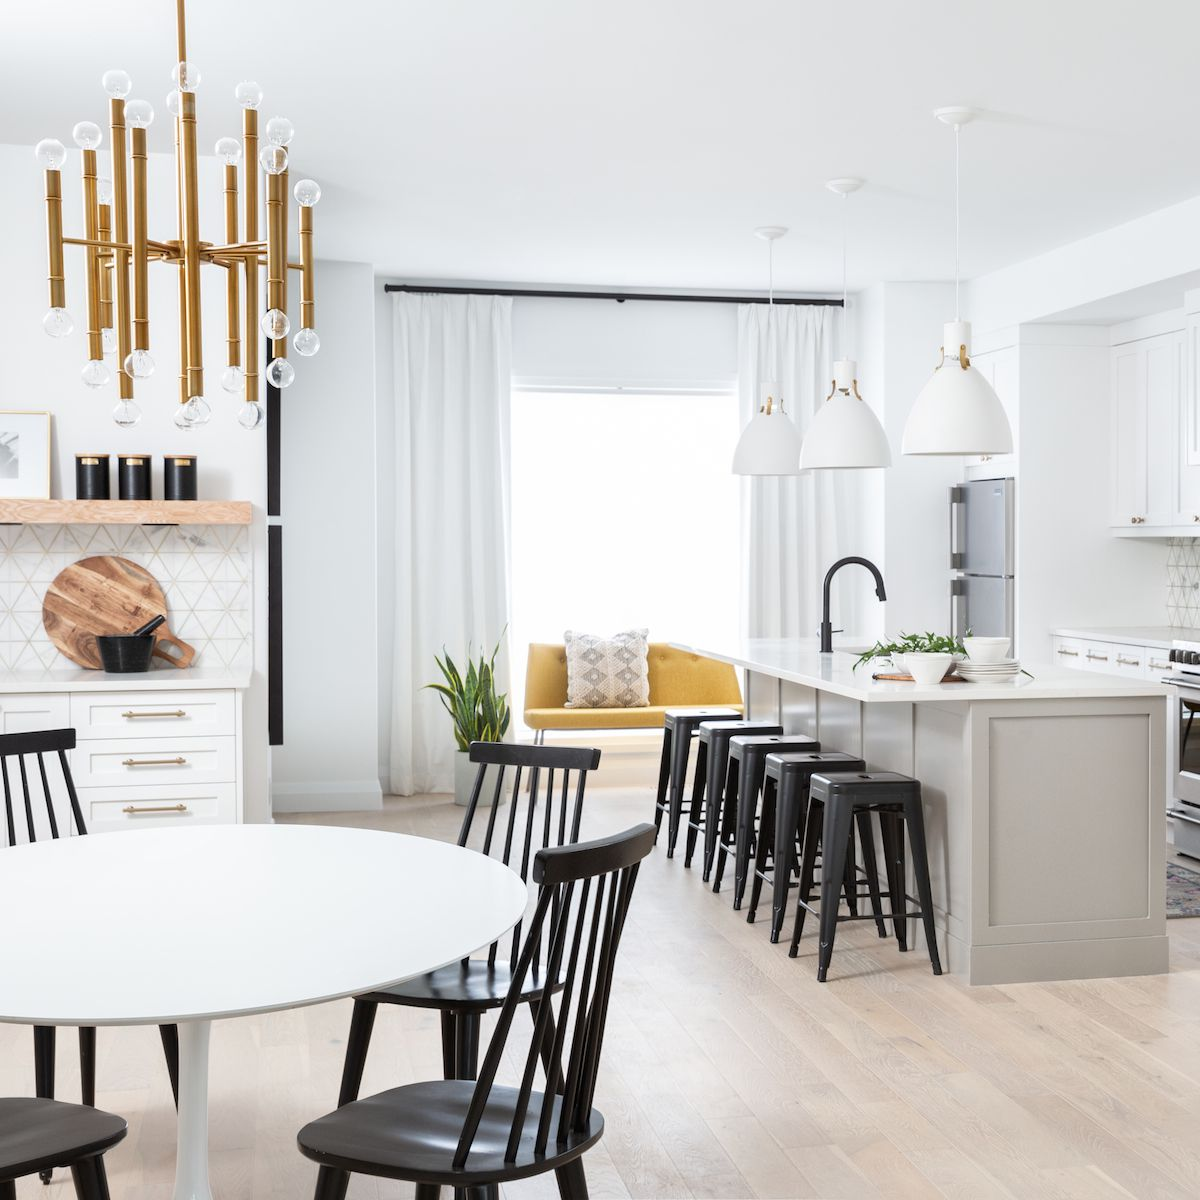 An open-concept kitchen with coordinated barstools and dining room chairs